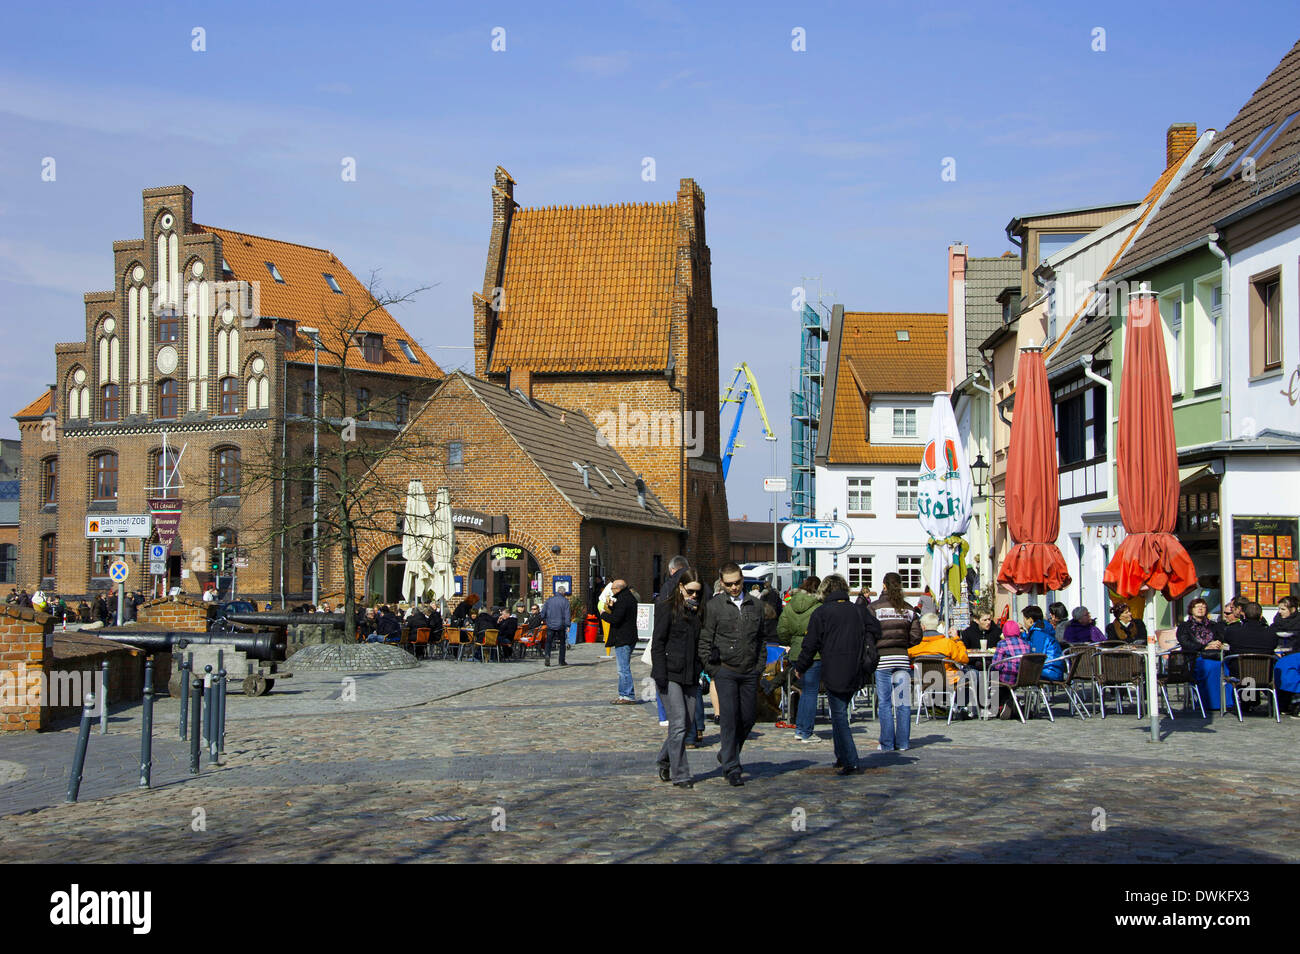 Custom house, Wismar - Stock Image